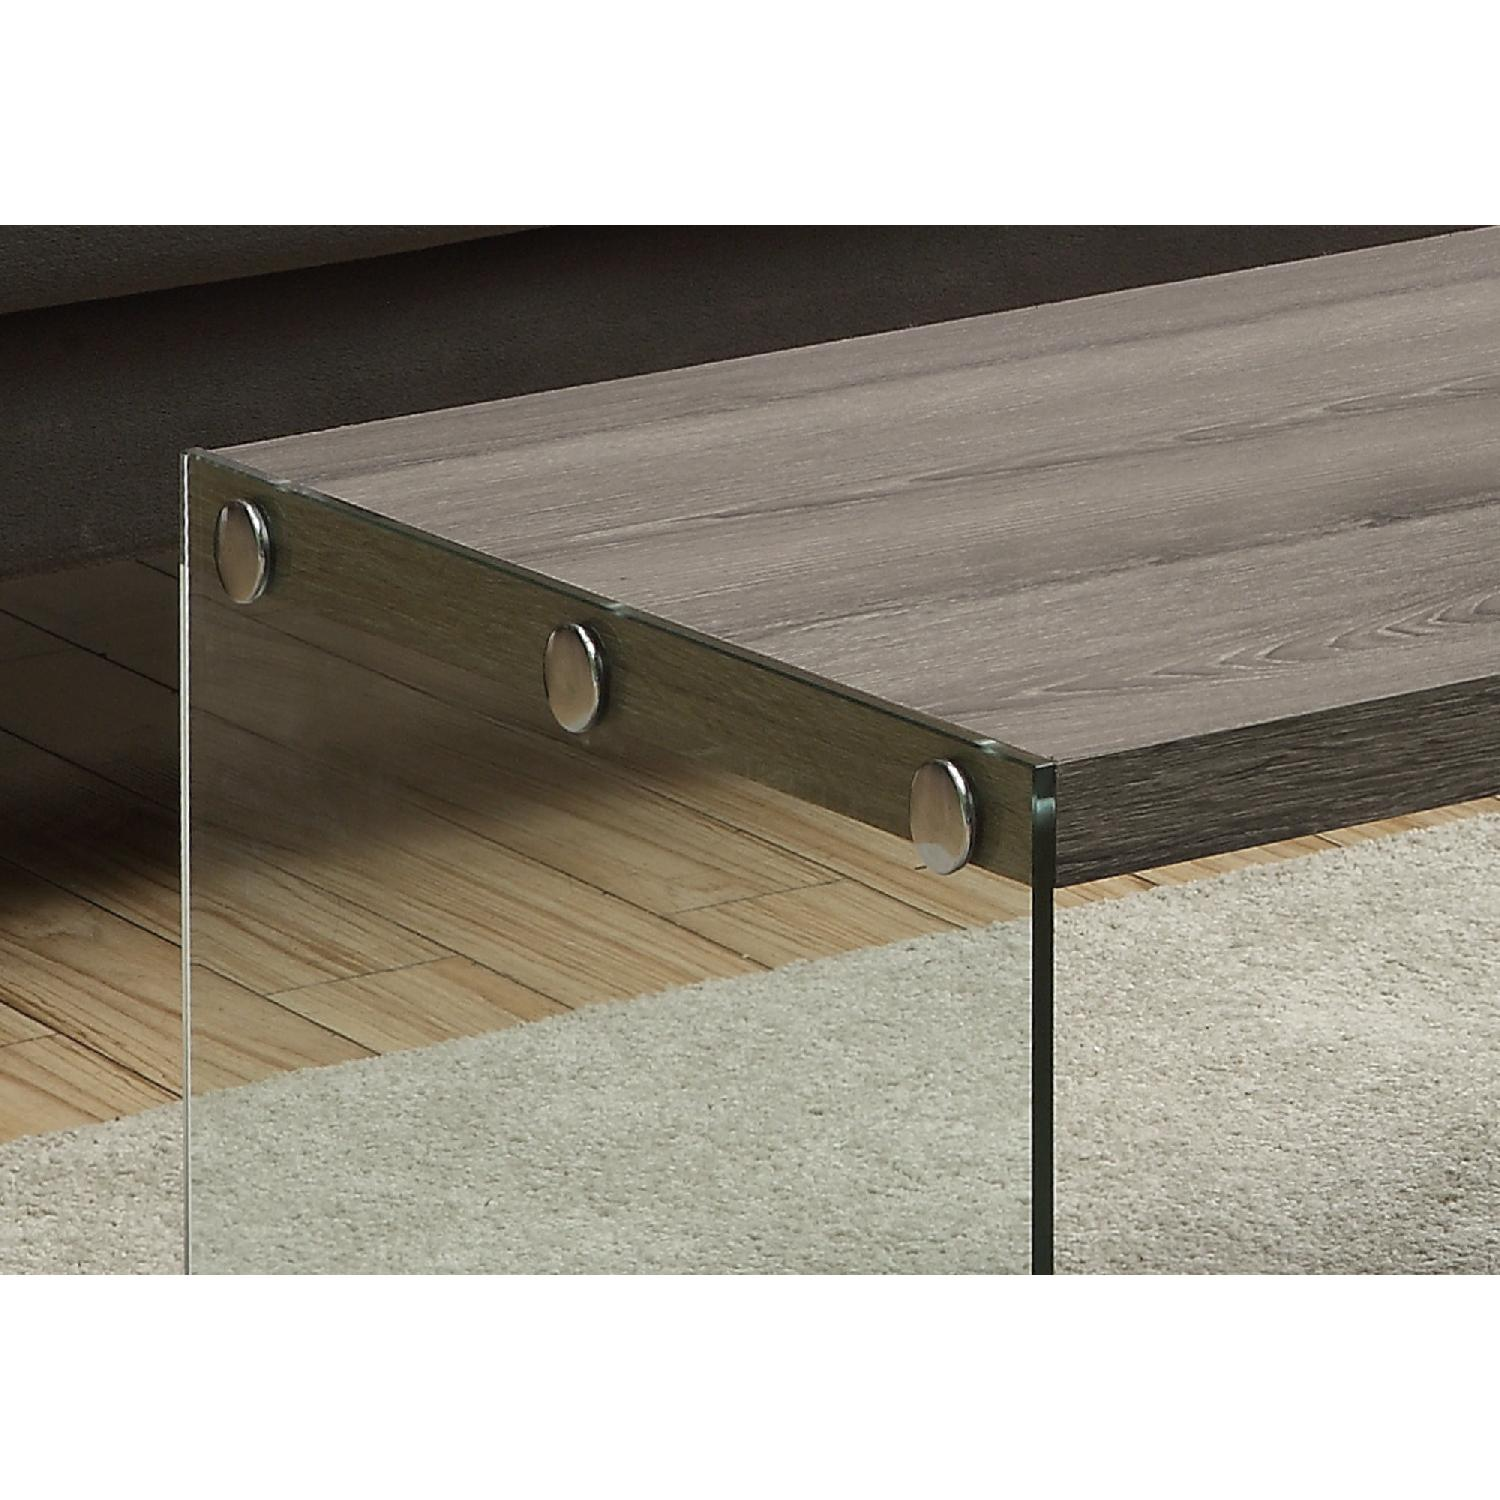 Monarch Dark Taupe Coffee Table w/ Tempered Glass Legs - image-2